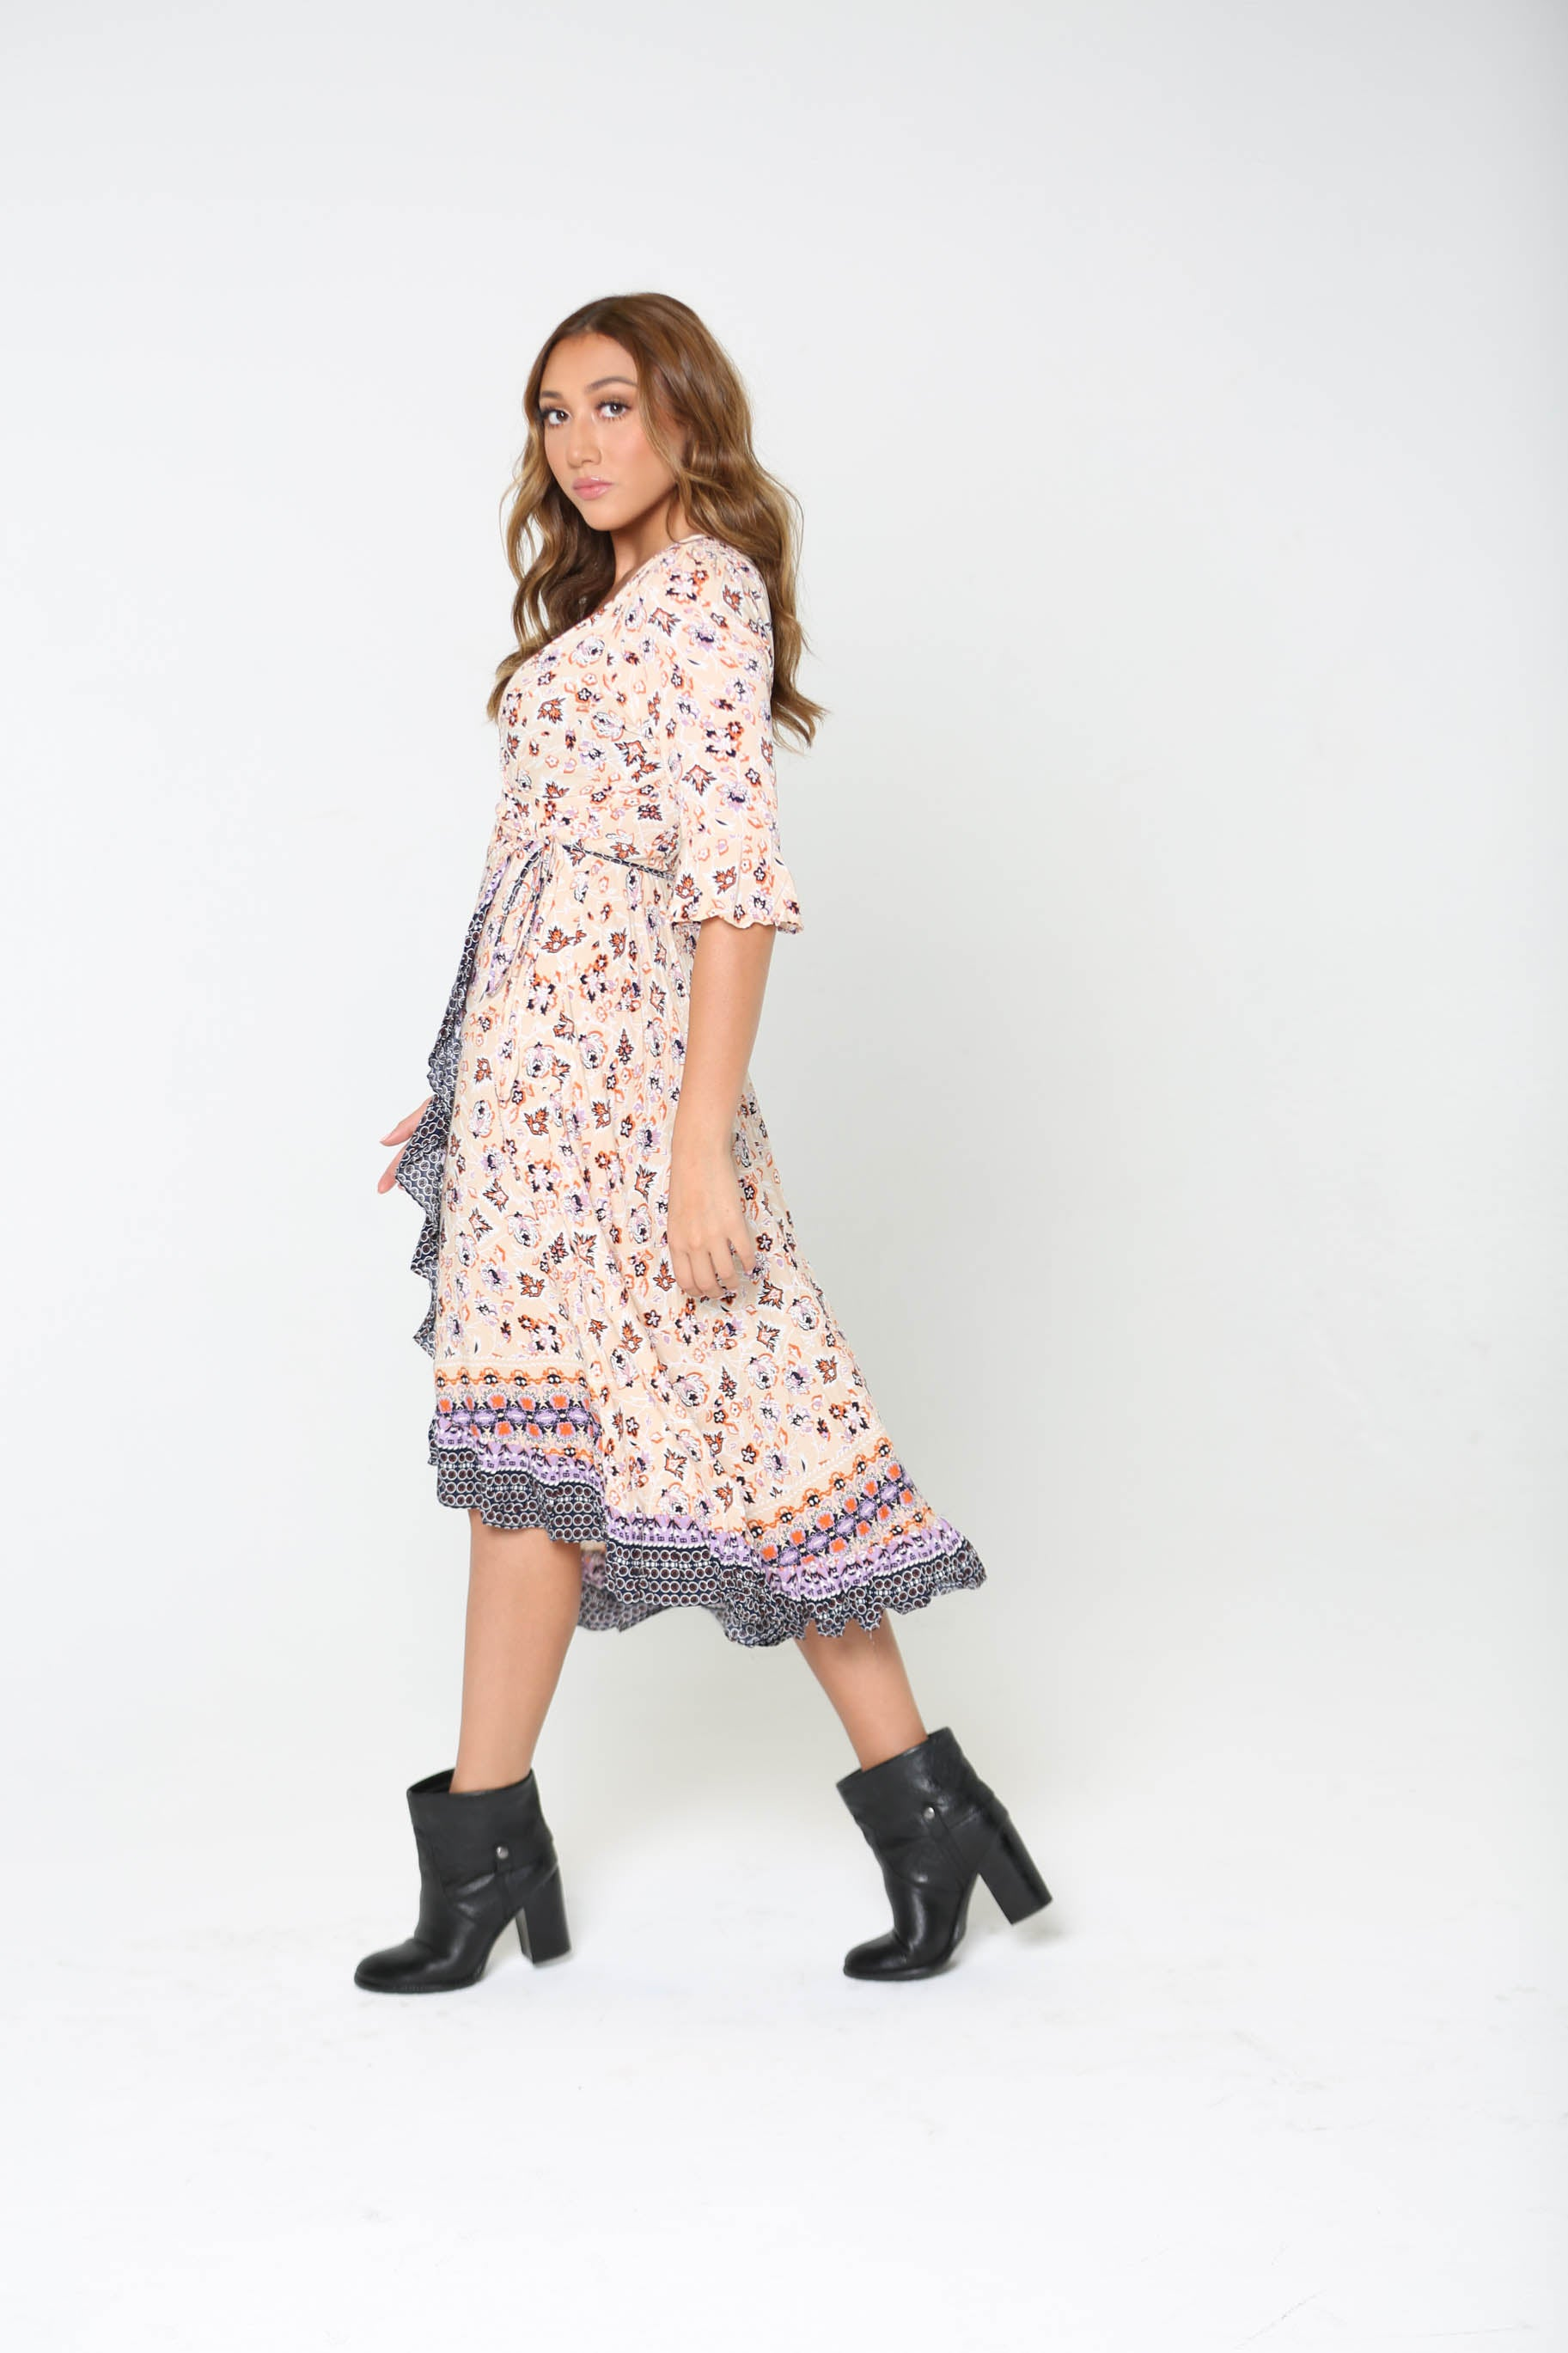 Pumpkin Patch Multi-Patterned Wrap Dress - The Flawless Babe Boutique